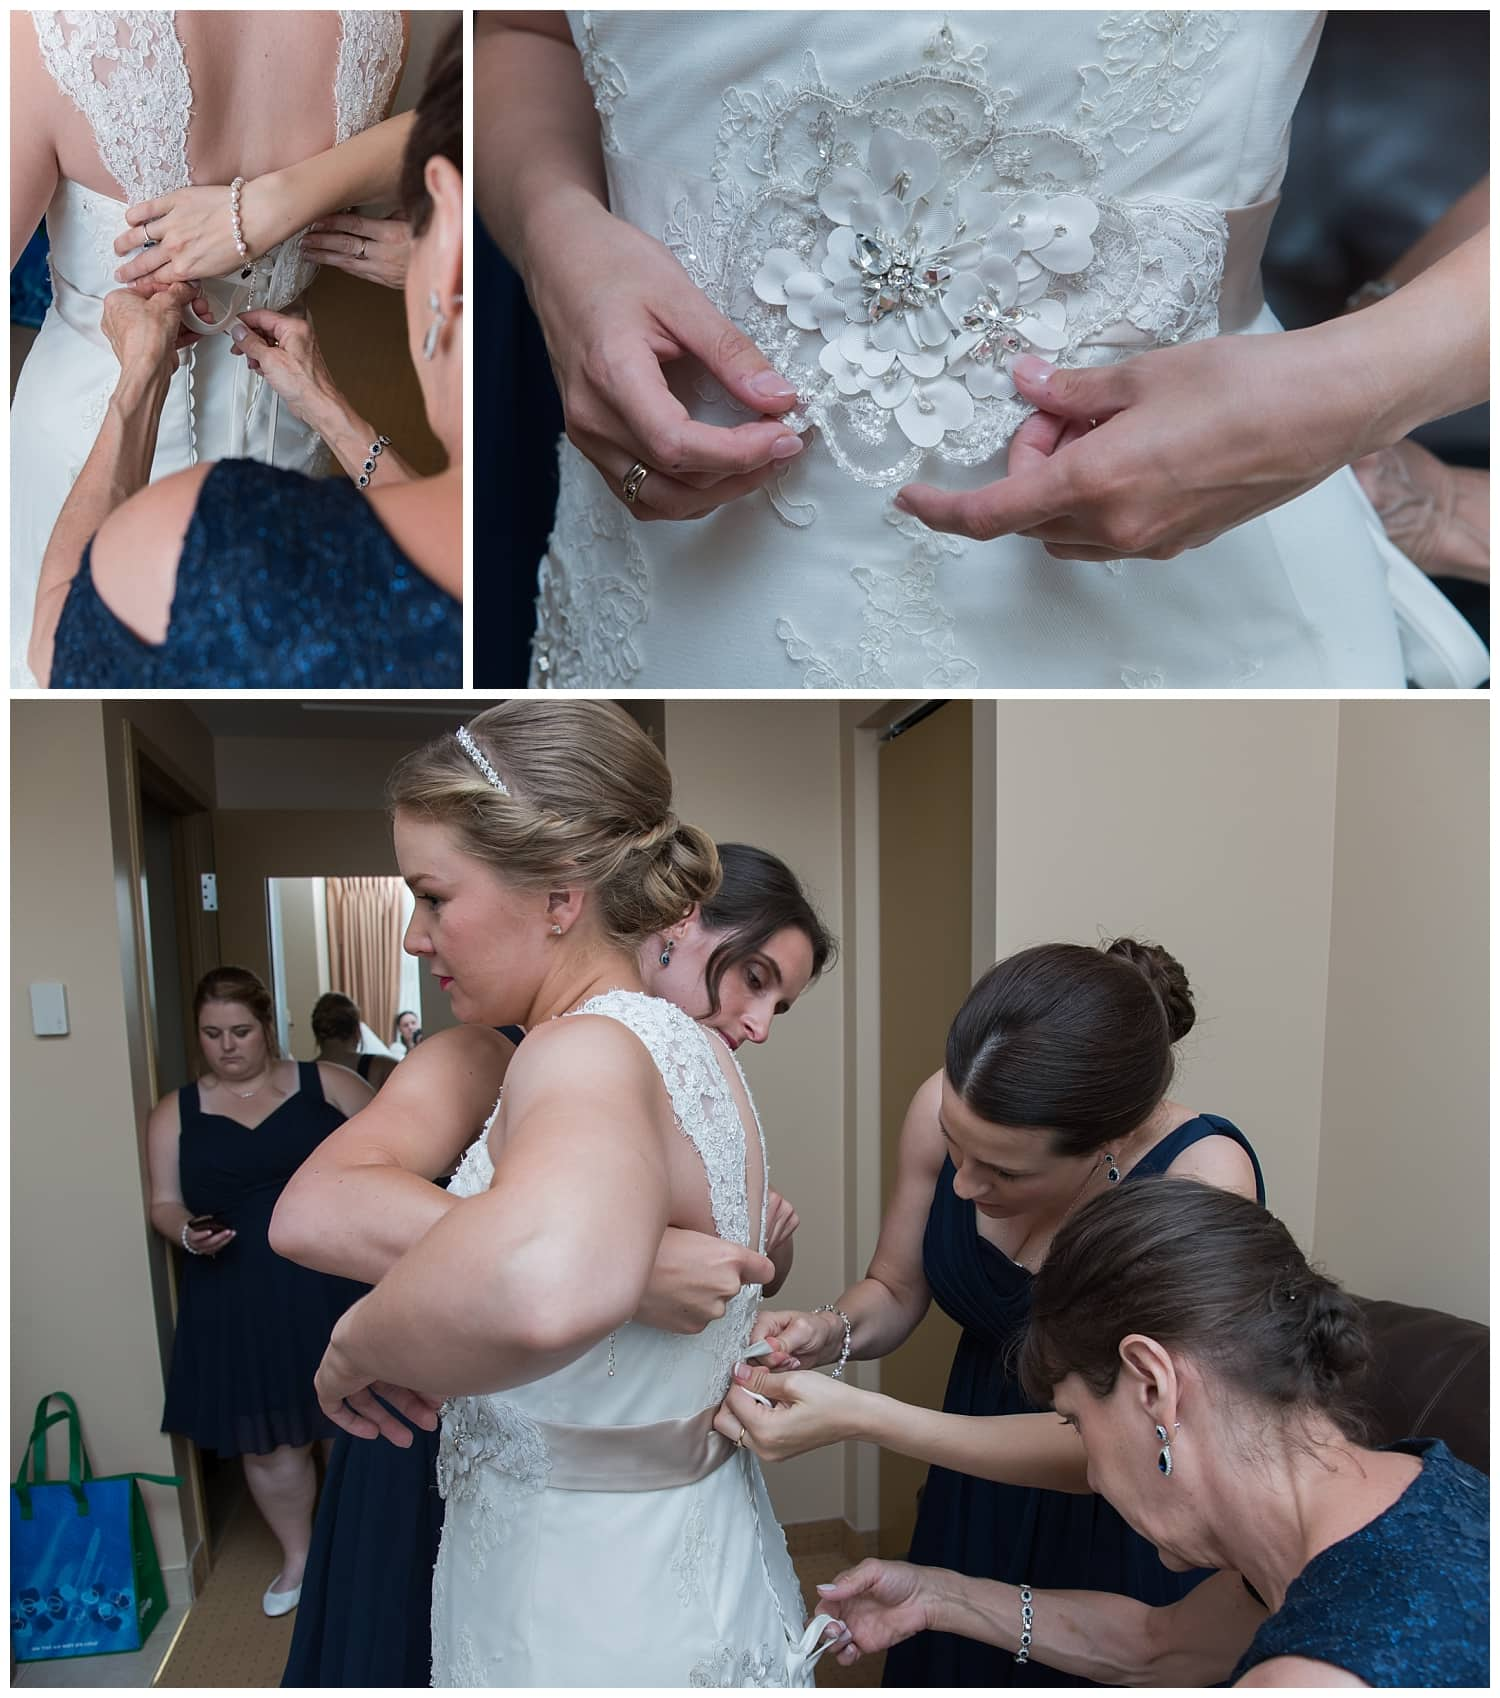 The bride with her bridesmaids get ready for her wedding at Juno Tower in Halifax, NS.